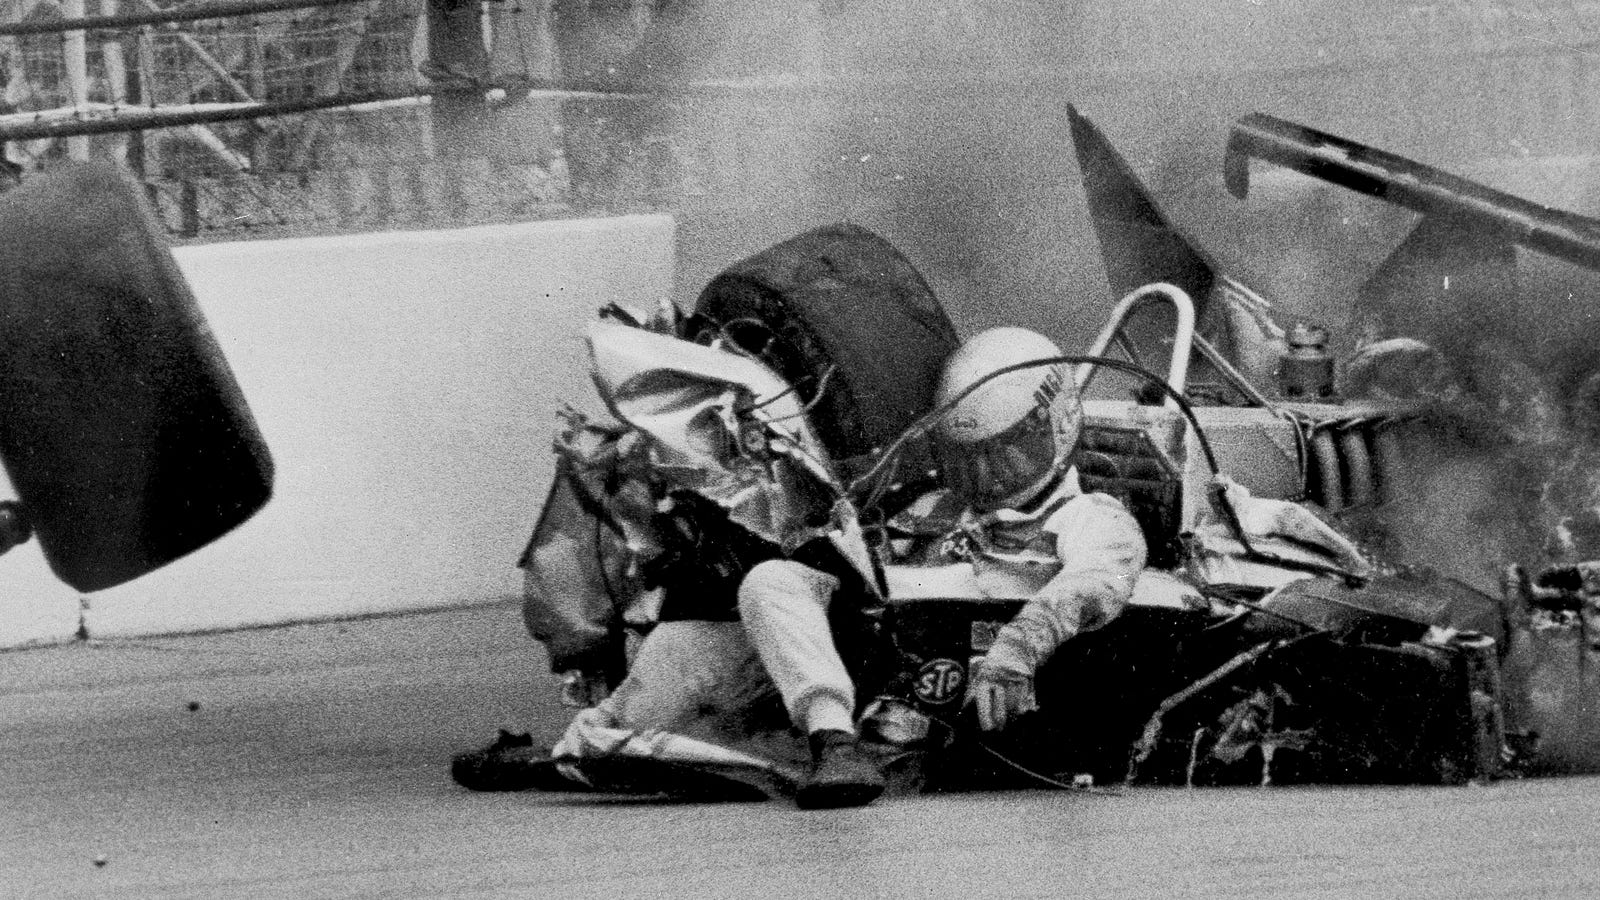 Remembering One Of The Most Terrifying Crashes In Indy 500 History